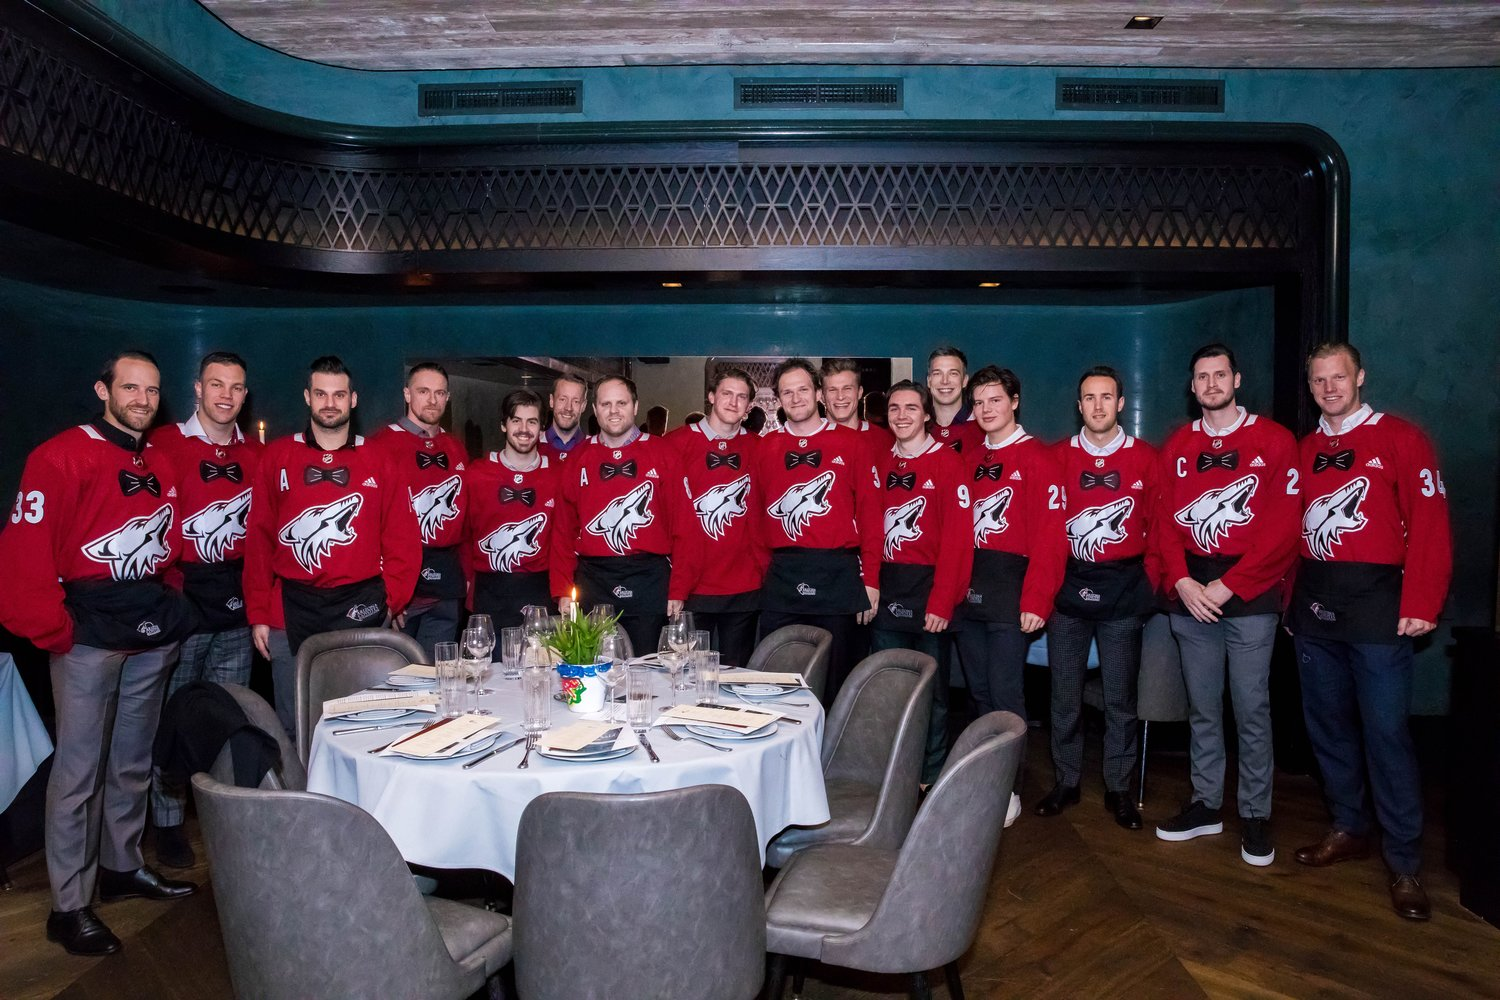 Arizona Coyotes players recently served food and wine at the team's Celebrity Waiters event.